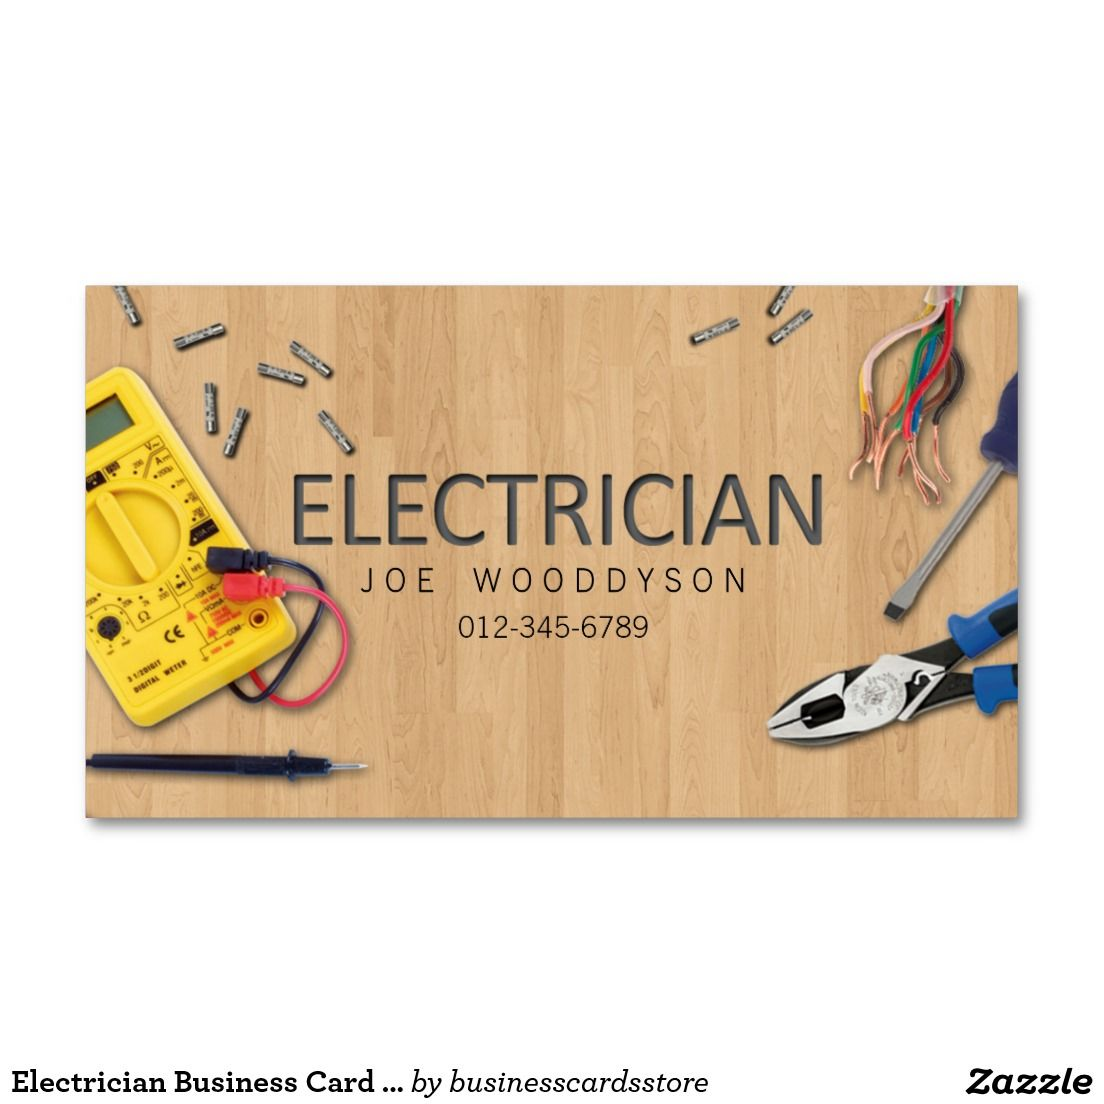 Electrician Business Card Electrical Tools Zazzle Com Electrical Tools Electrician Business Cards